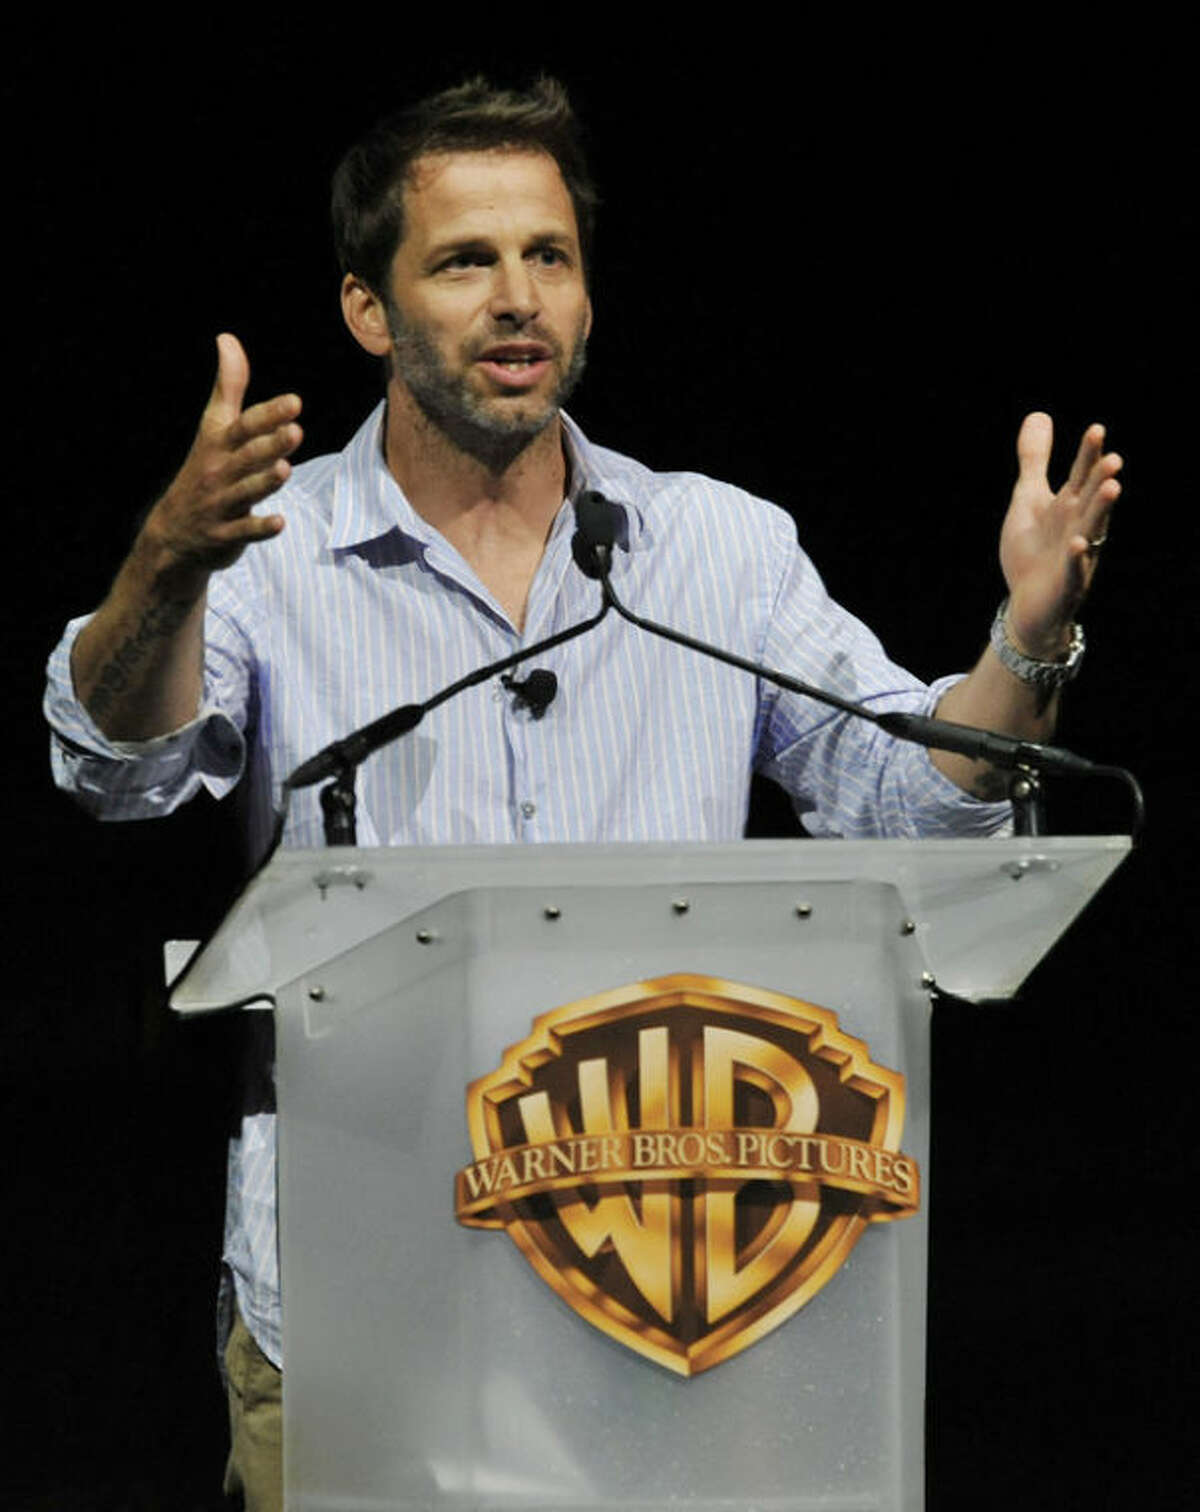 """Zack Snyder, director of the forthcoming film """"Man of Steel,"""" addresses the audience during the Warner Bros. presentation at CinemaCon 2013 at Caesars Palace on Tuesday, April 16, 2013 in Las Vegas. (Photo by Chris Pizzello/Invision/AP)"""